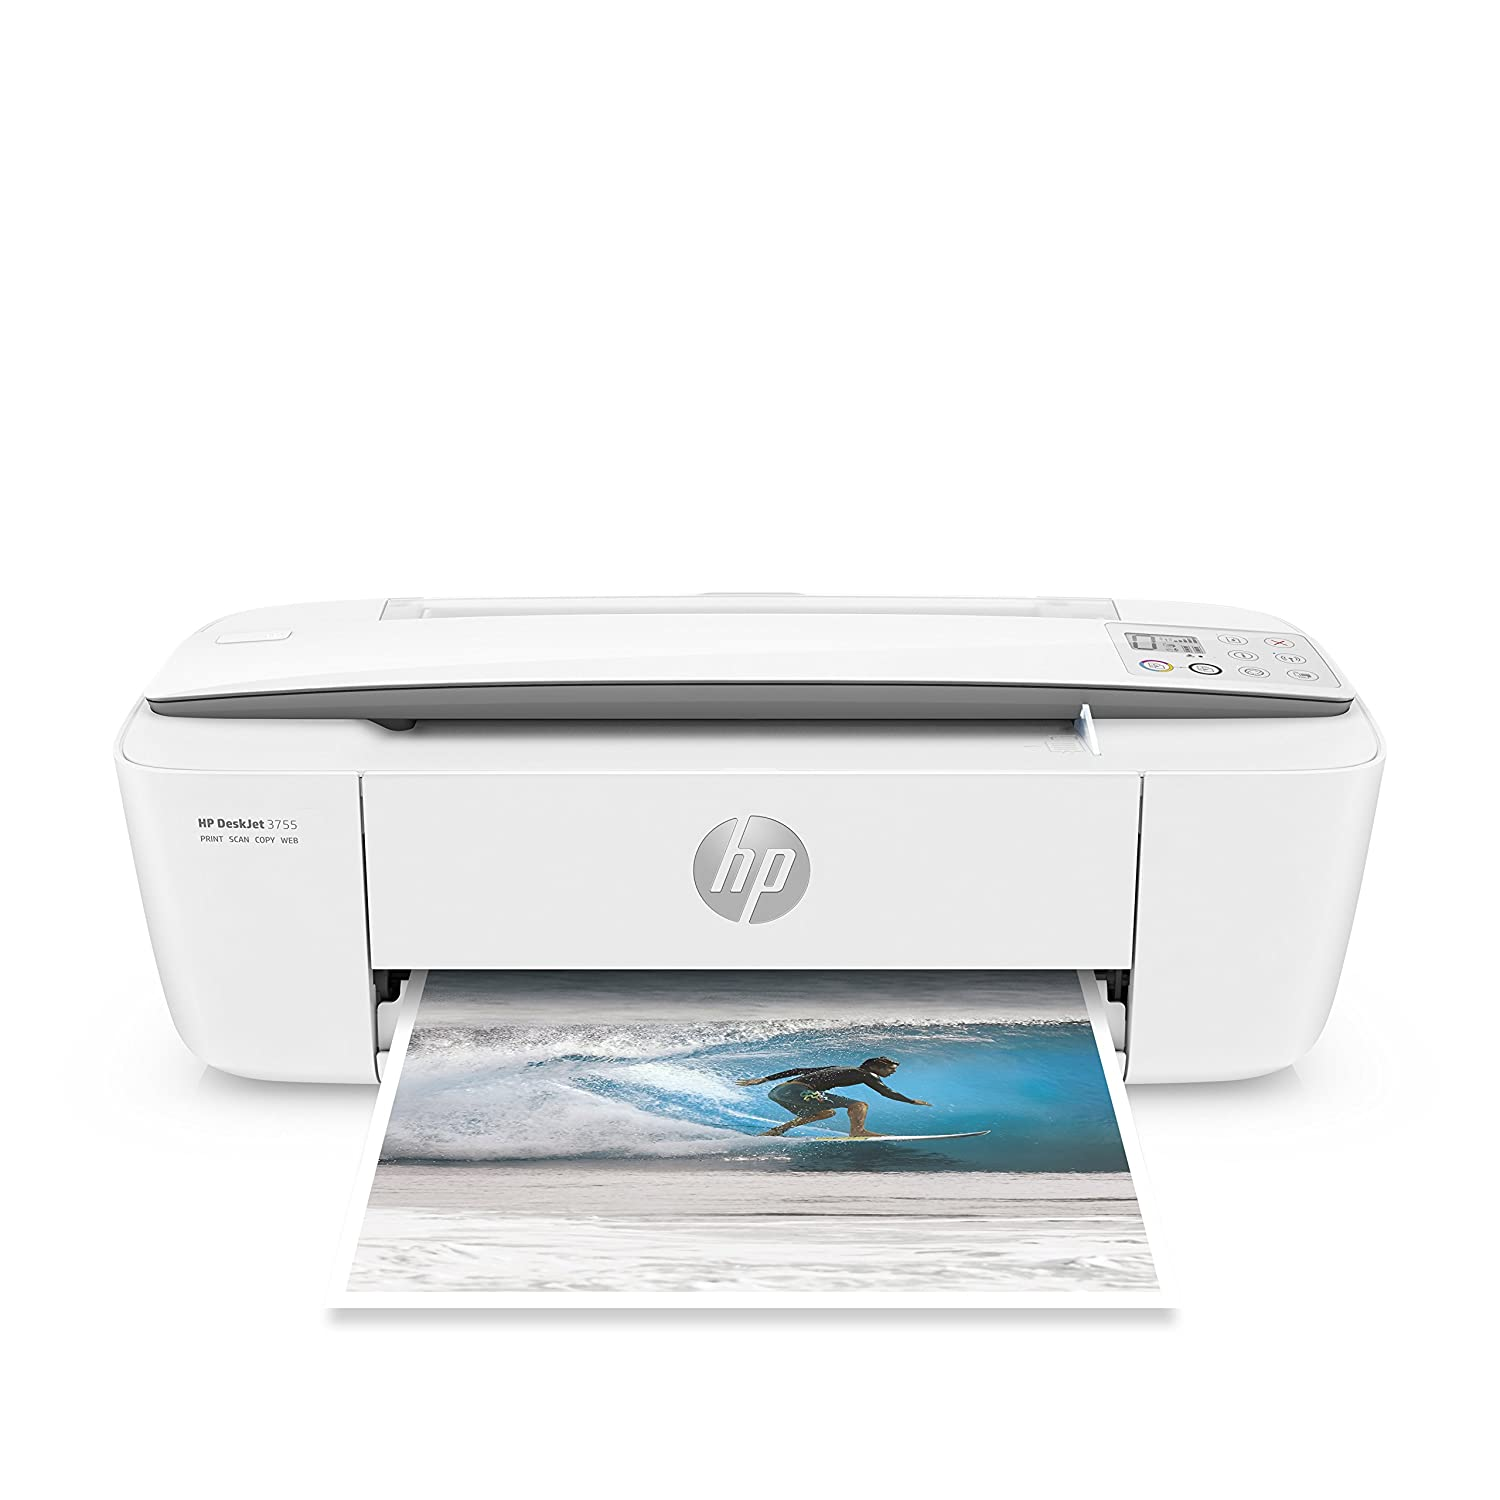 Best Mac Printer